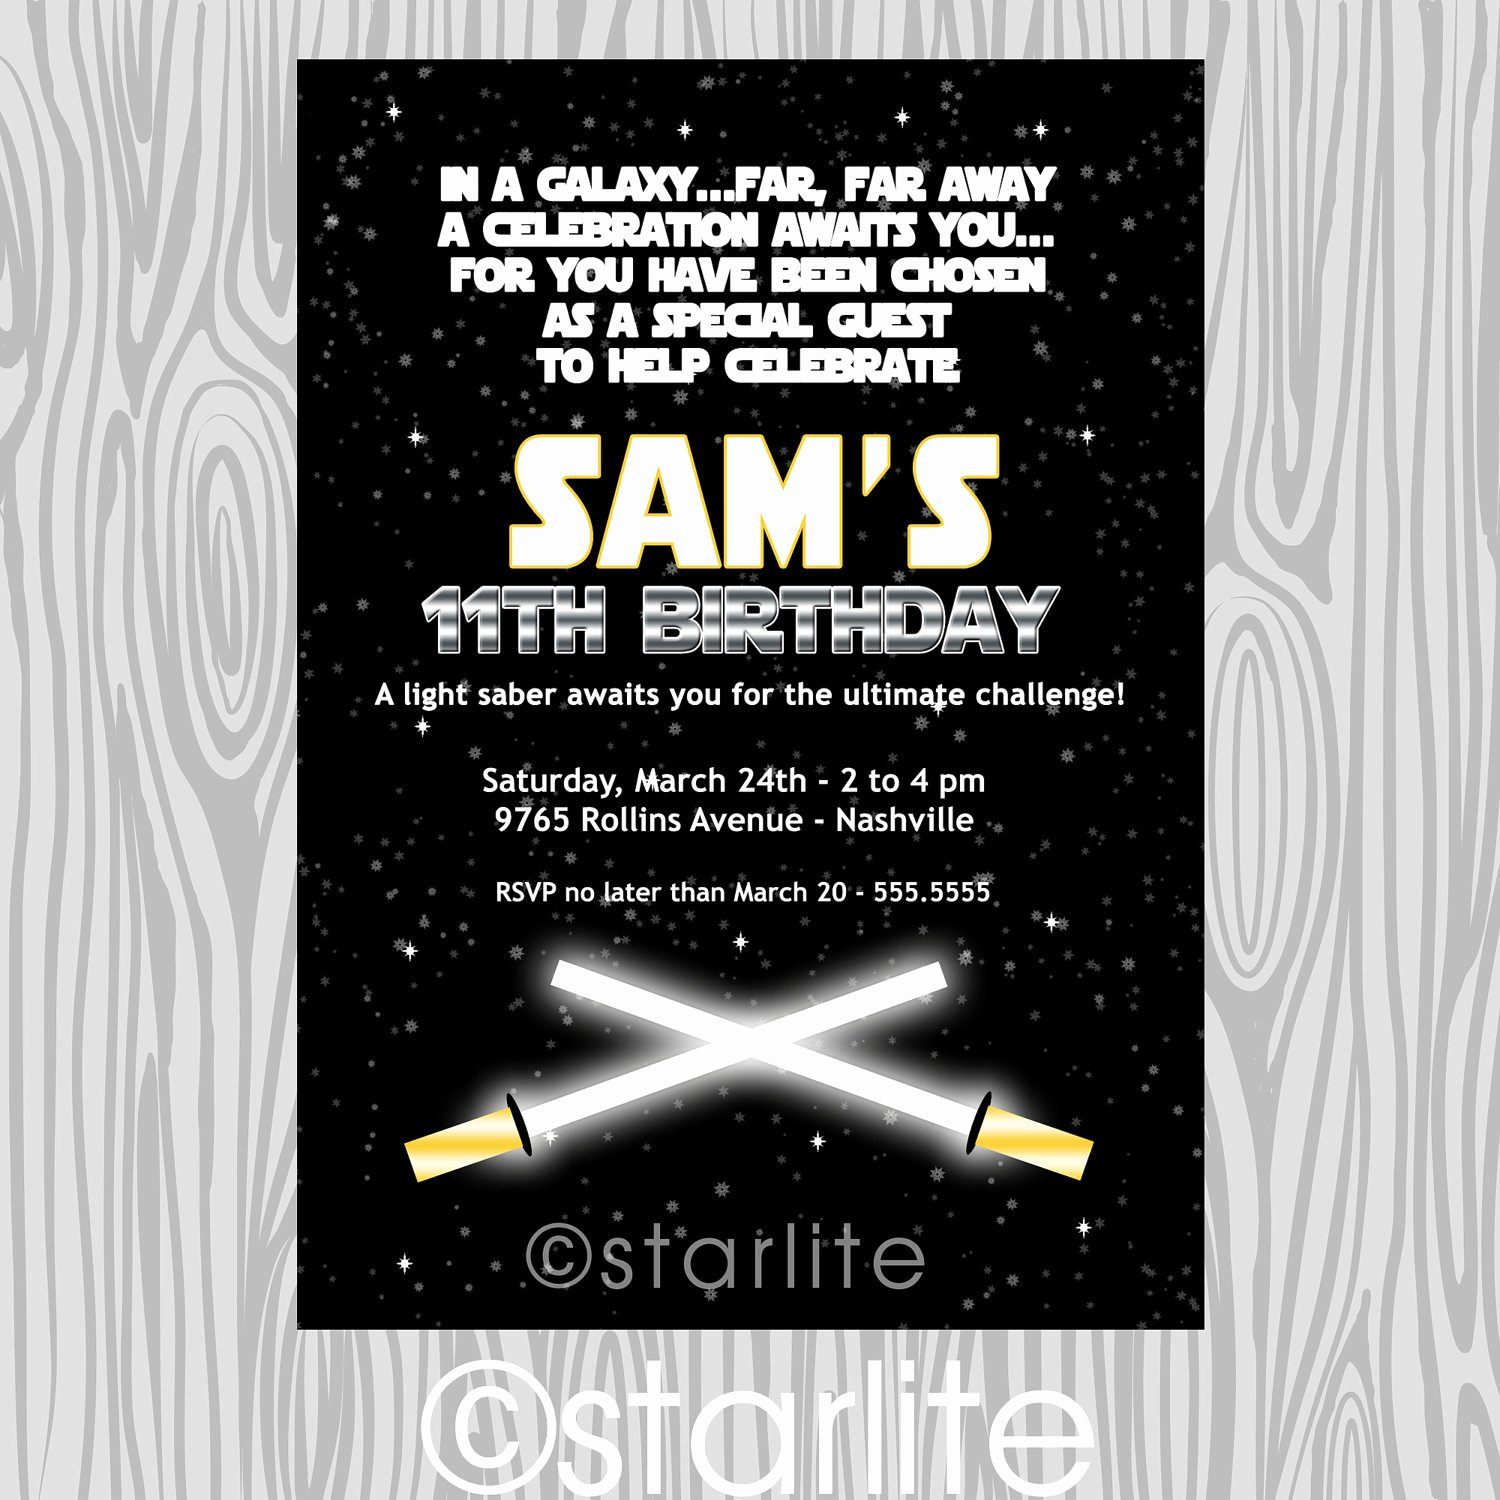 Star Wars Birthday Party Invitation Lovely Star Wars Inspired Star Wars theme Birthday Party by Starwedd